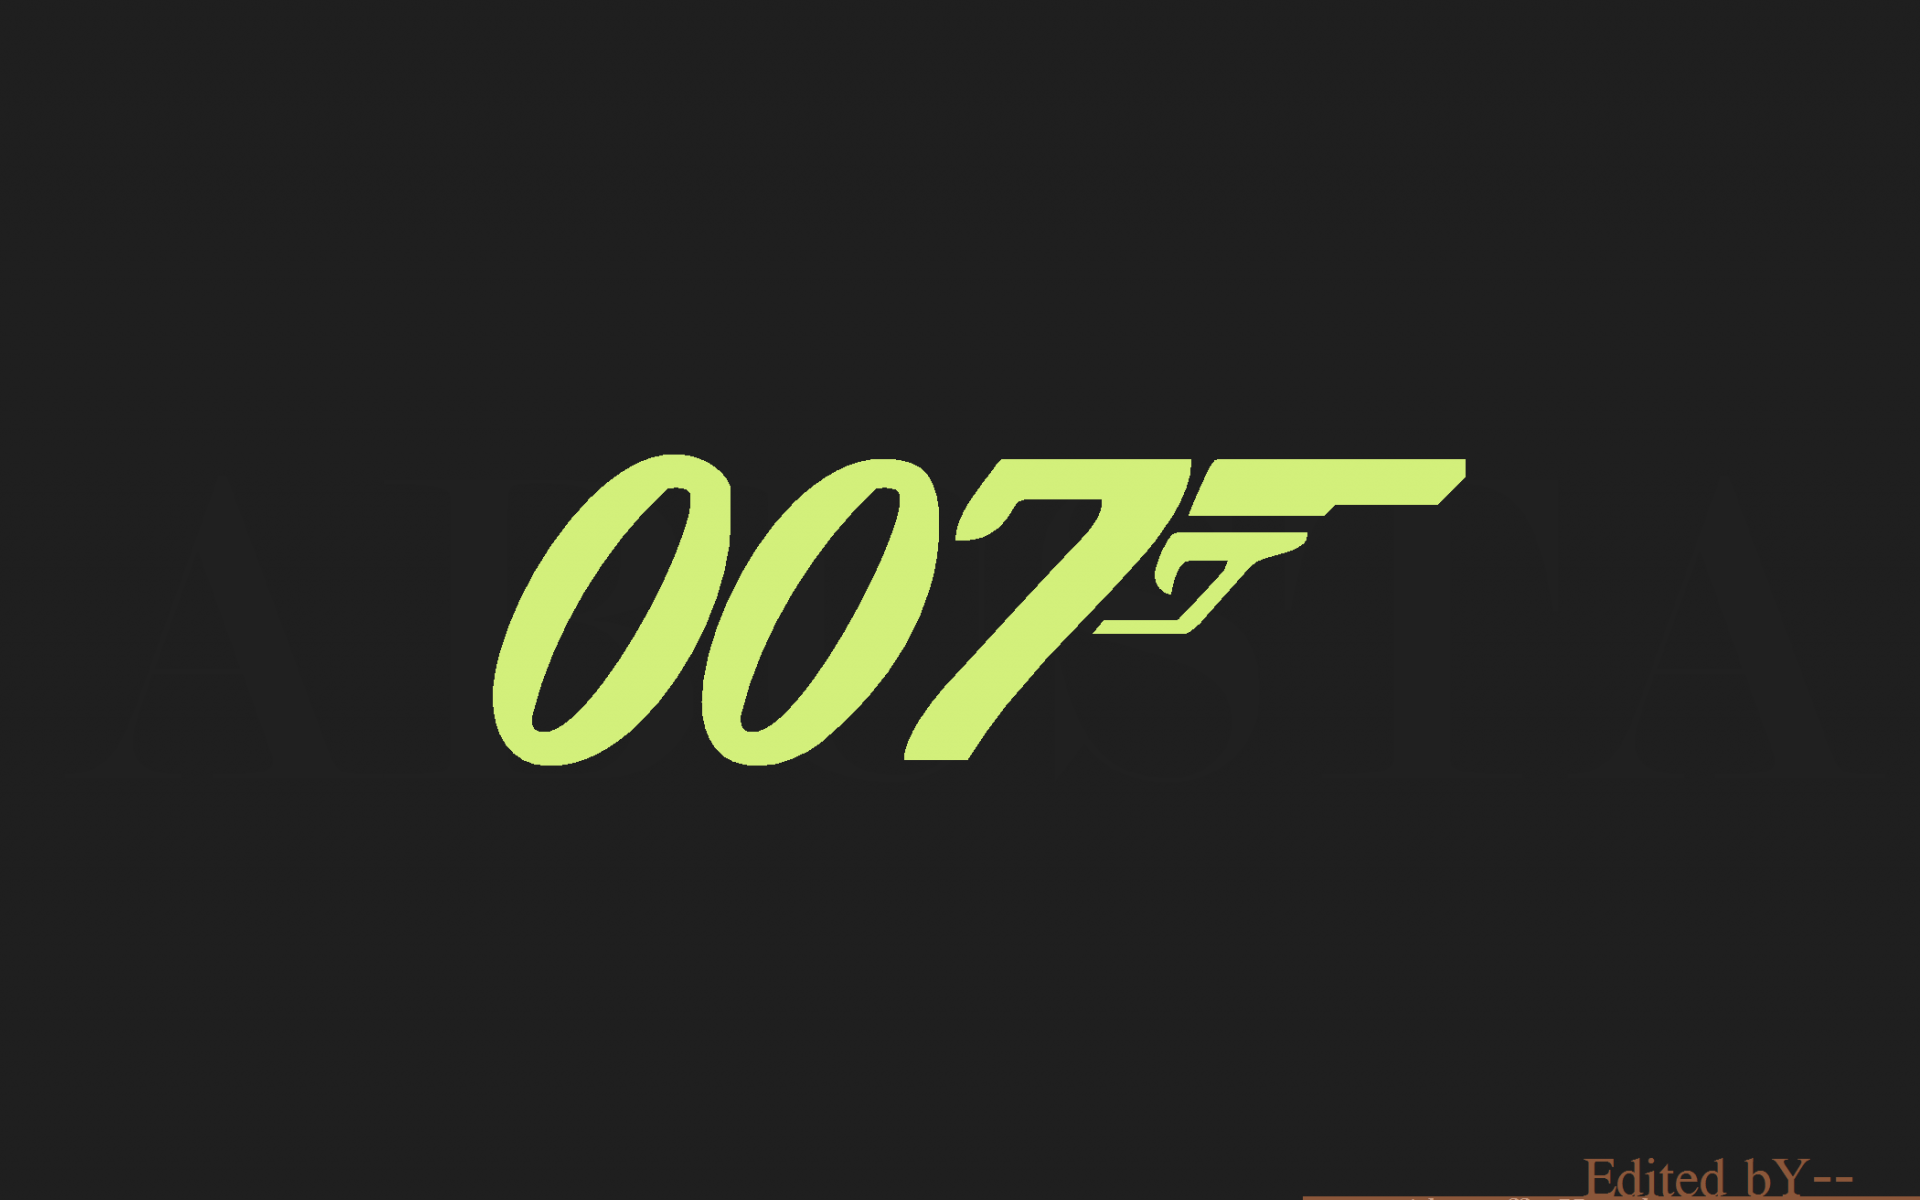 007 Wallpapers 1920x1200